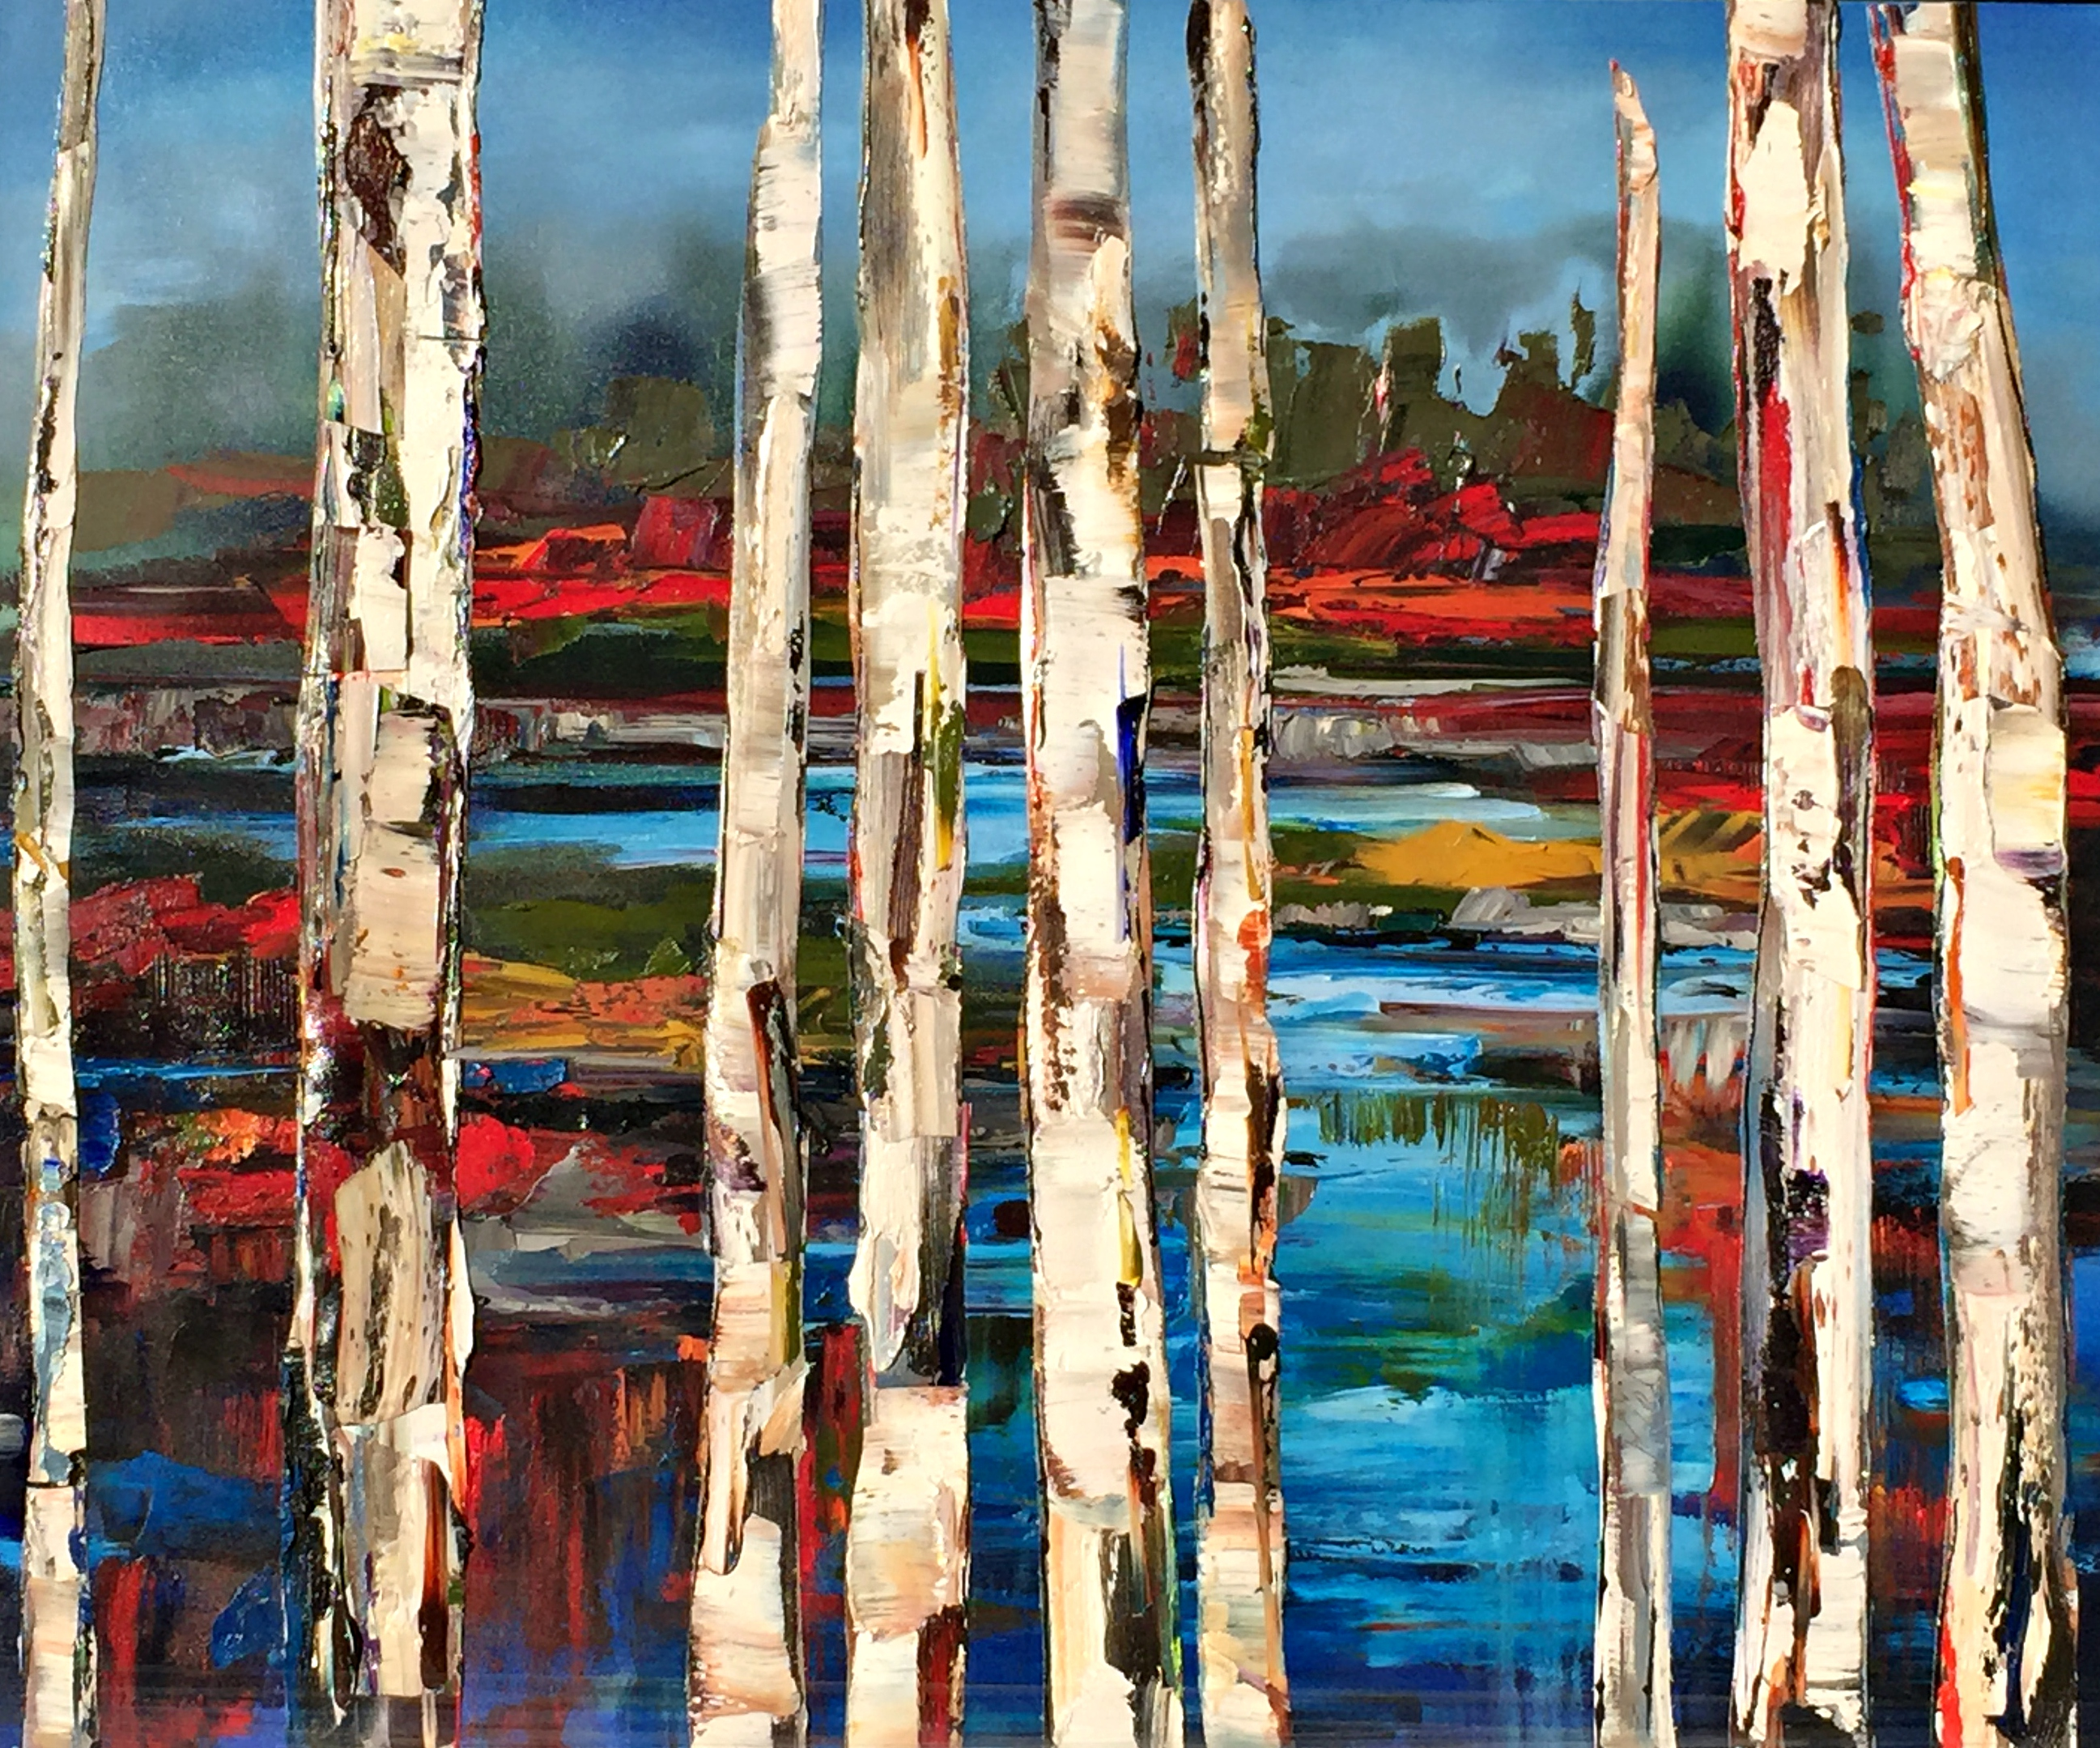 In Simpler Terms, oil painting by Kimberly Kiel | Effusion Art Gallery + Cast Glass Studio, Invermere BC